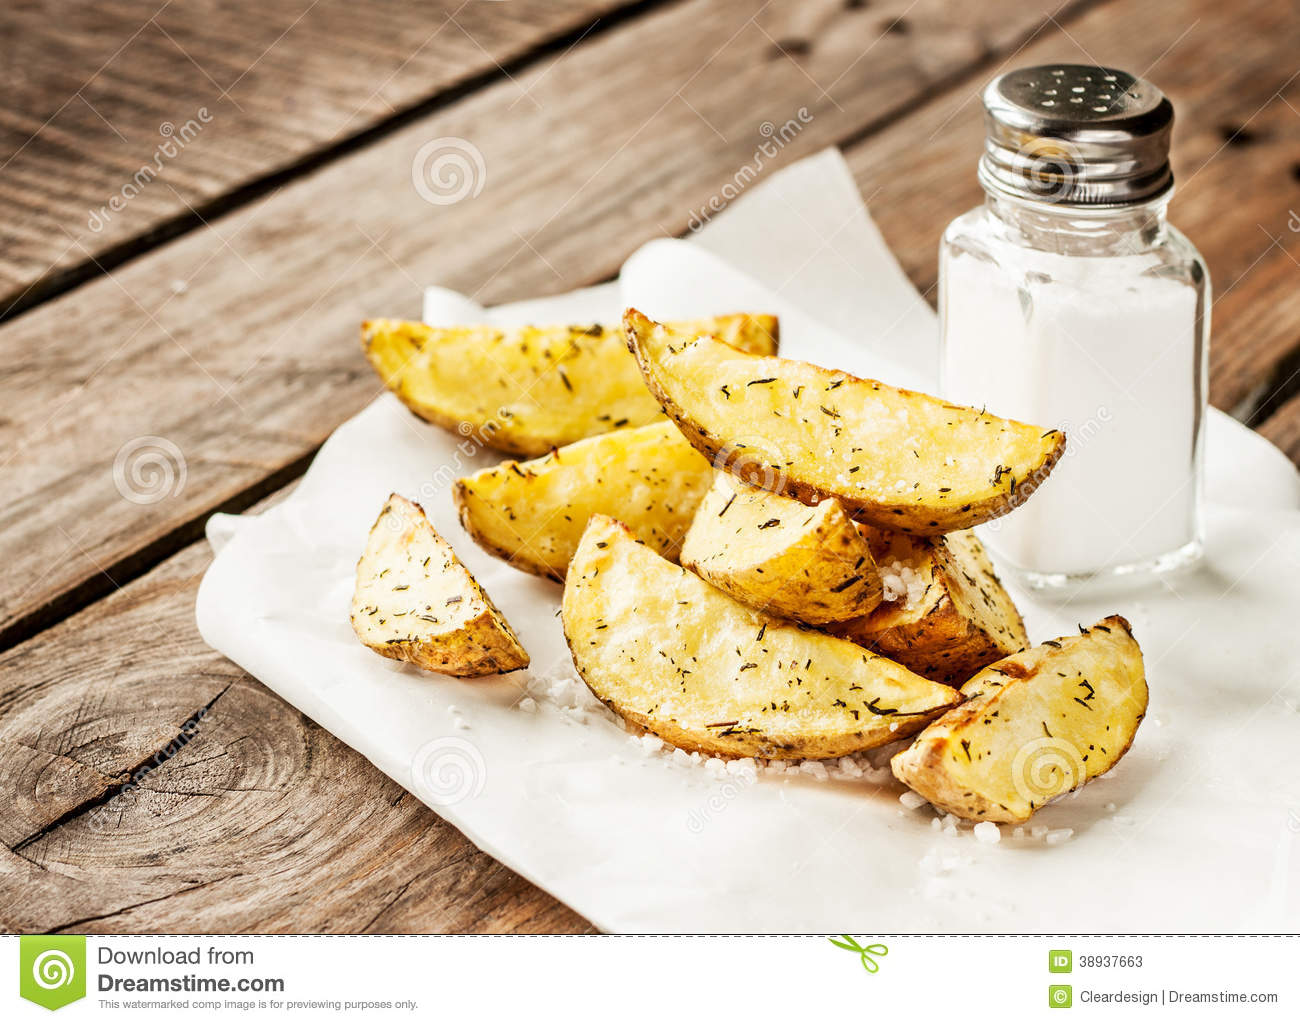 potato wedges on rustic wood table bar menu stock image image 38937663. Black Bedroom Furniture Sets. Home Design Ideas